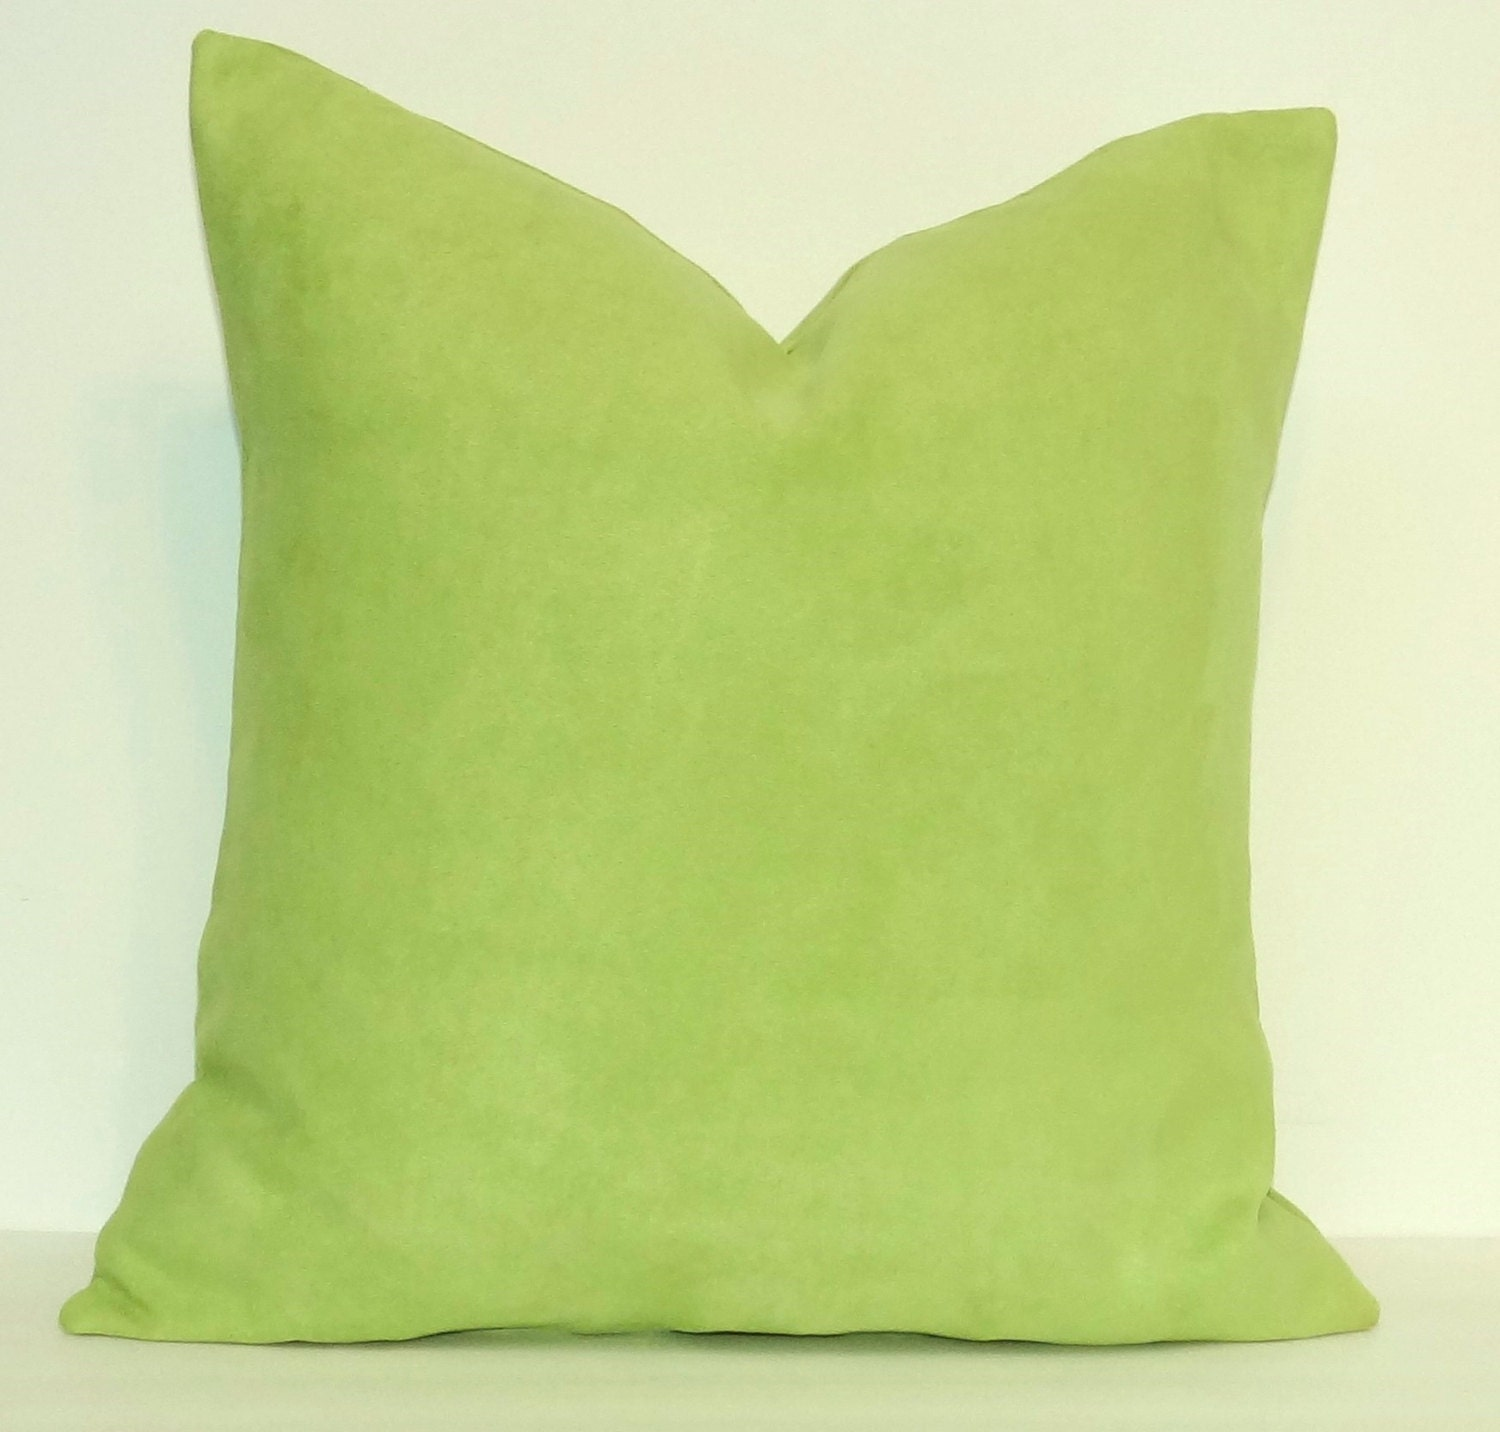 Throw Pillows Linen : Lime Green SuedeCloth Decorative Pillow Cover by OurLittleOlive